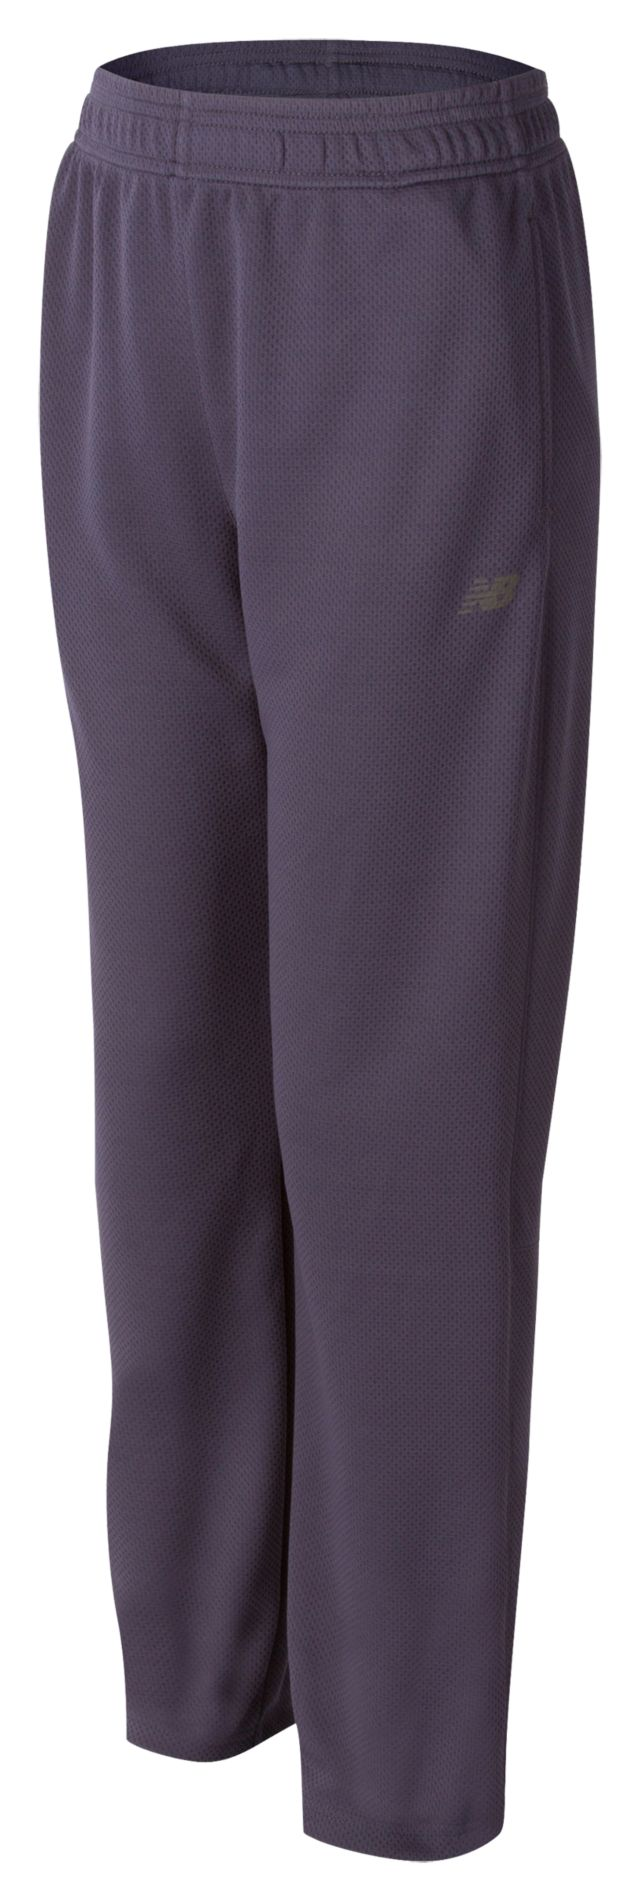 Boy's Athletic Pant